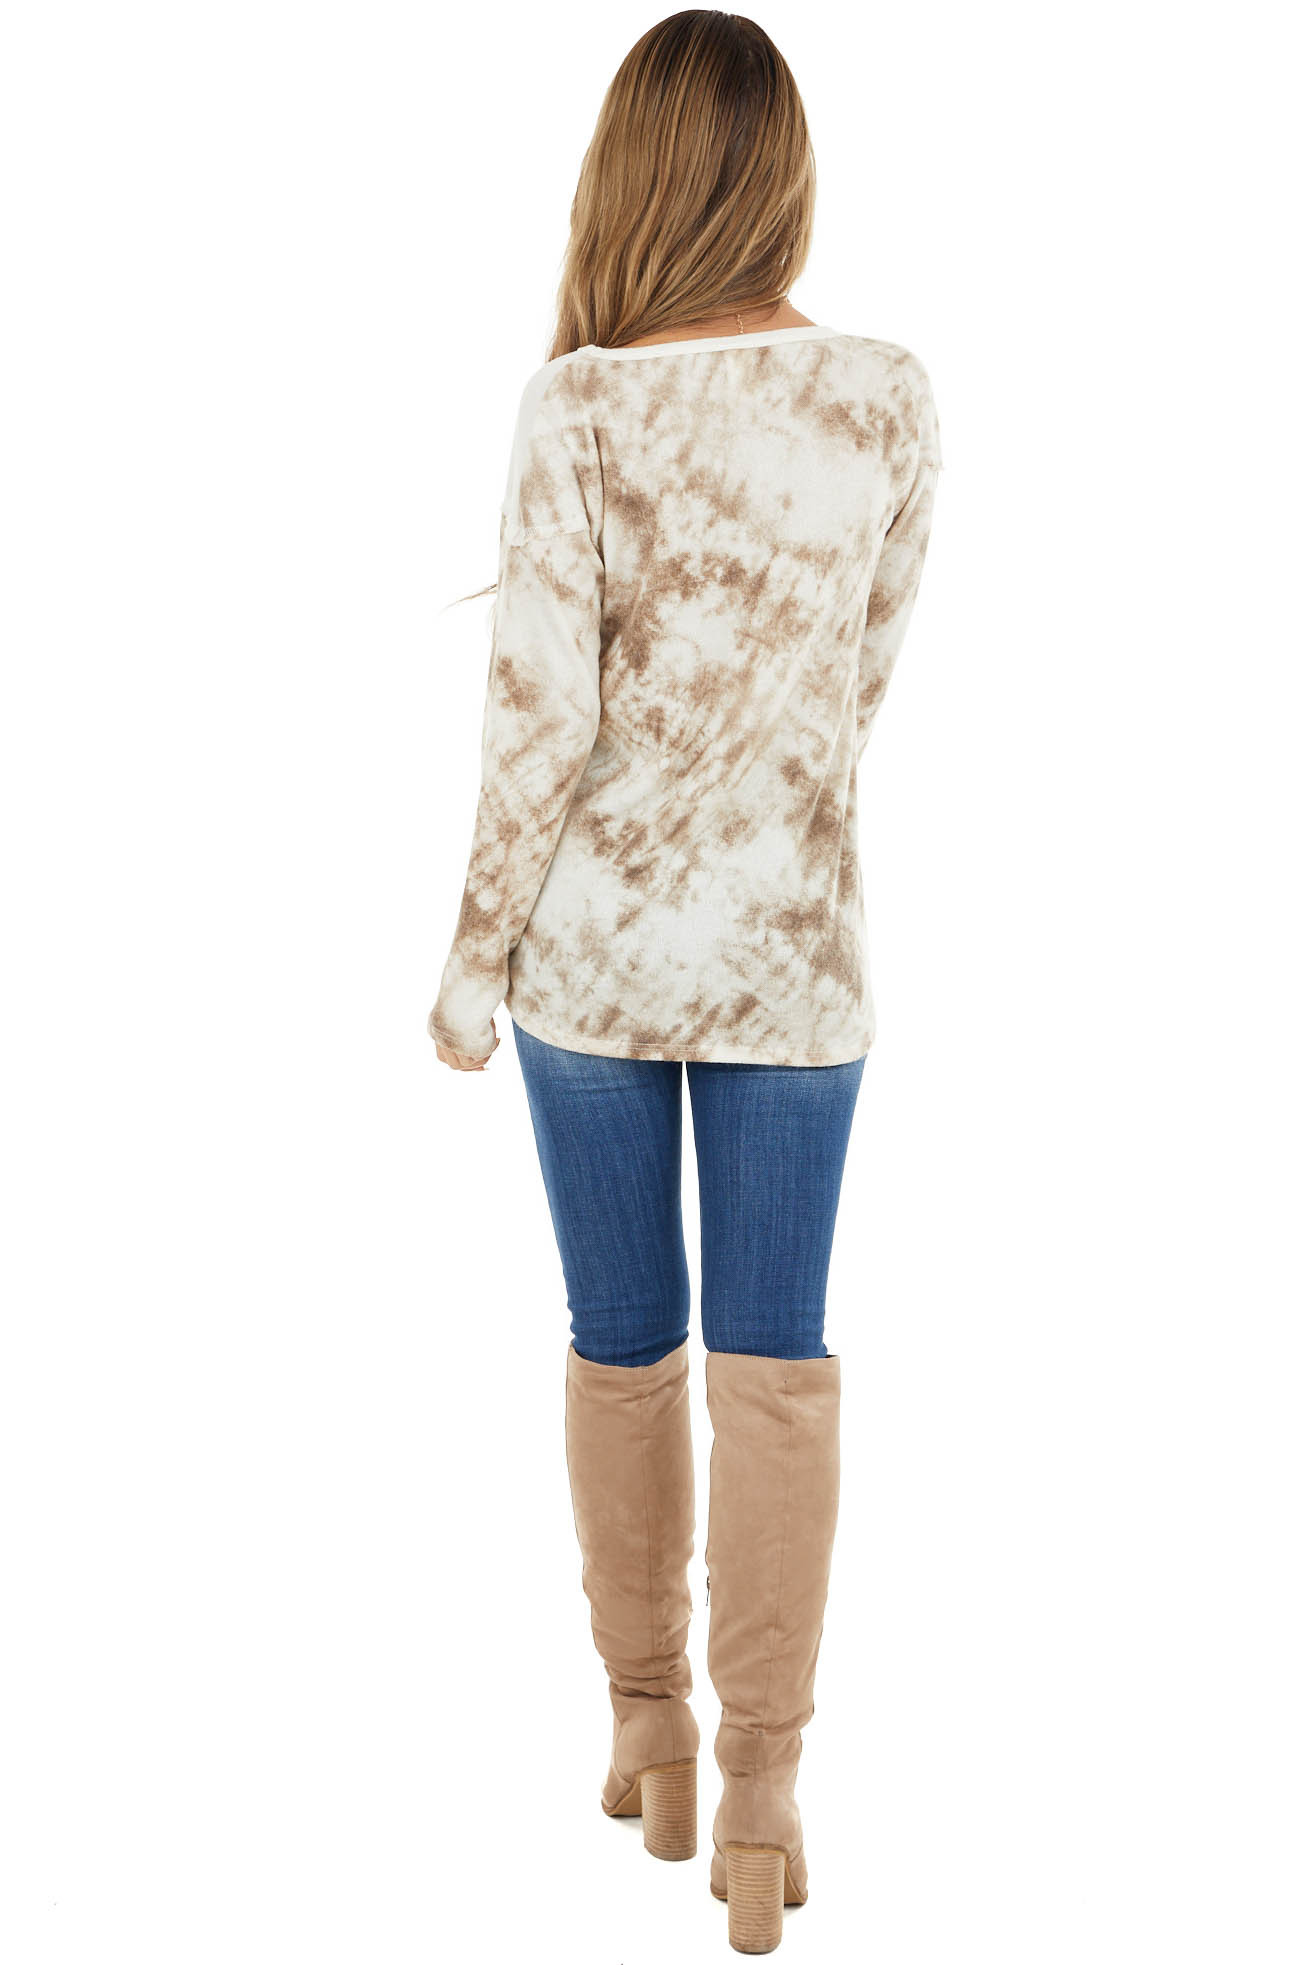 Ivory and Taupe Tie Dye Color Block Long Sleeve Top